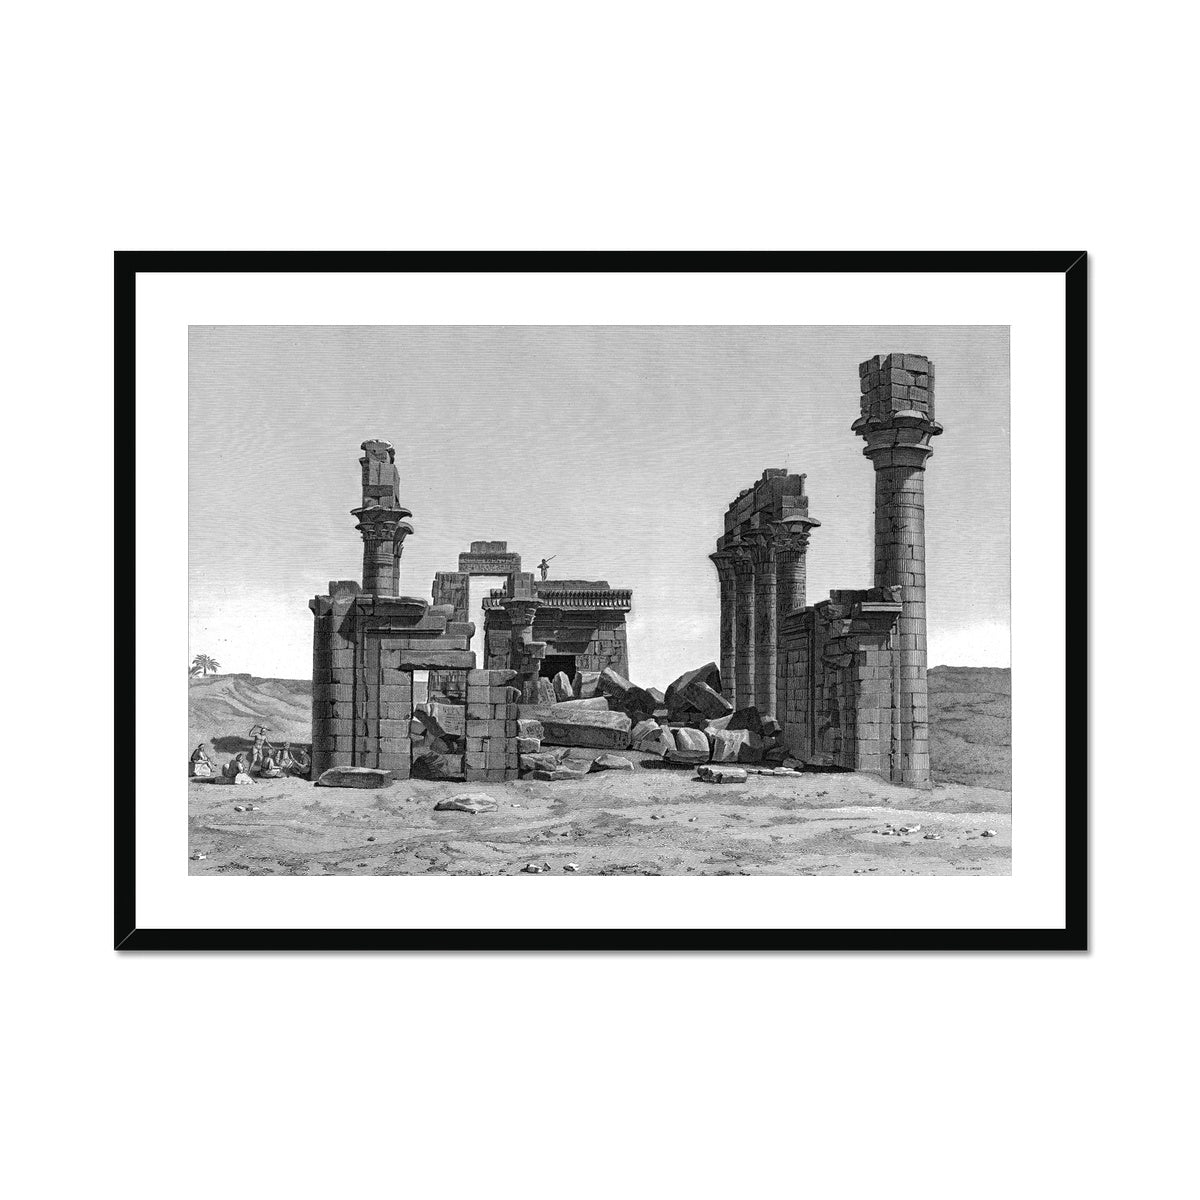 The Temple of Hermonthis Ruins 2 - Armant Egypt -  Framed & Mounted Print